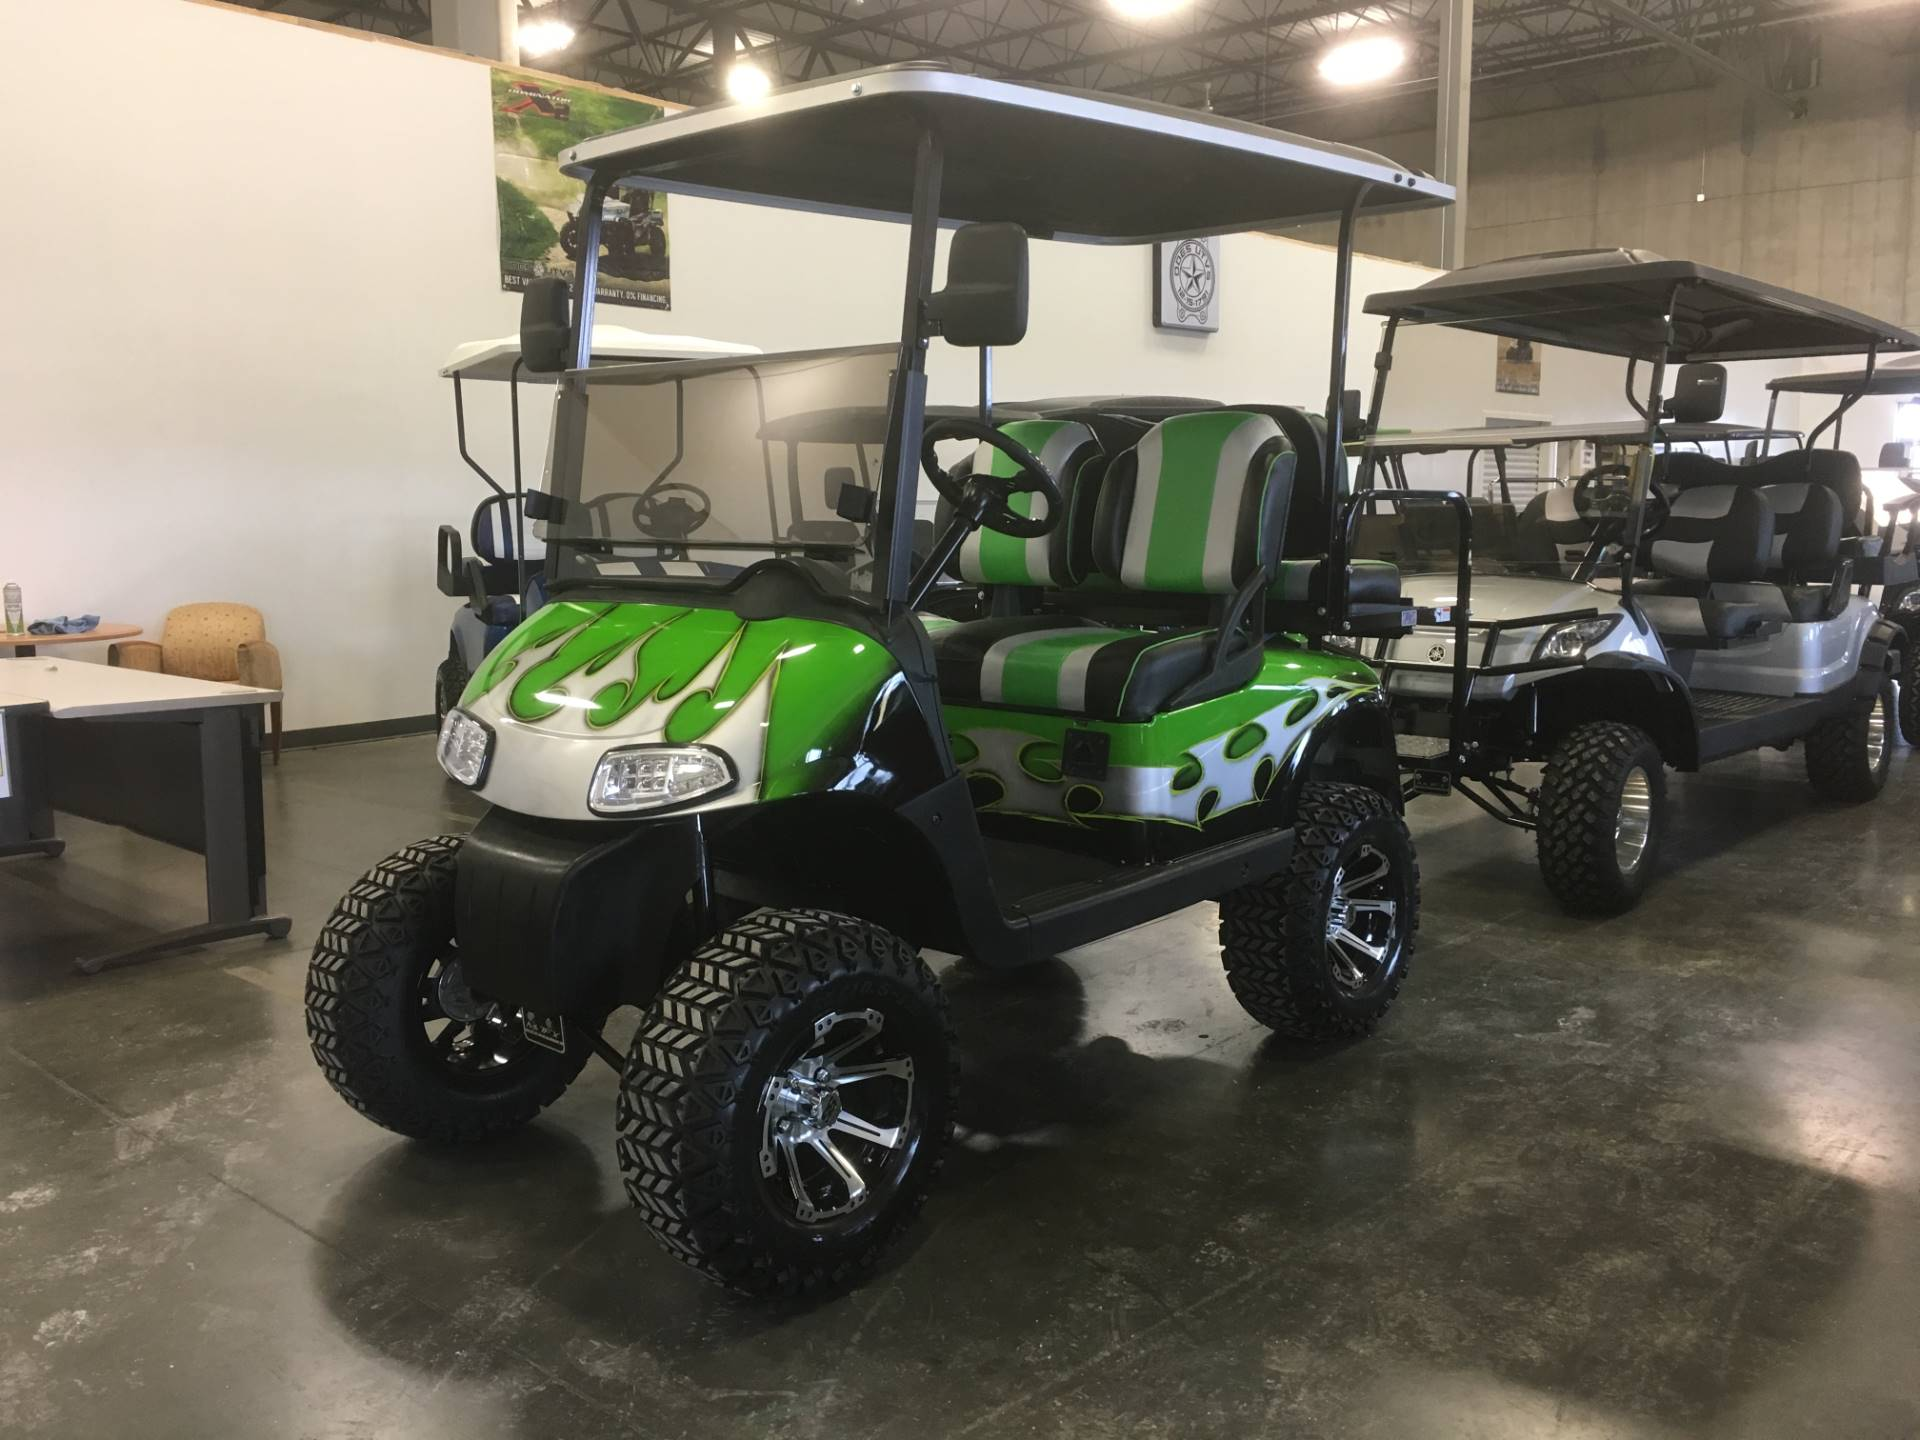 Used 2013 e z go rxv golf carts in aitkin mn stock number 5162575 2013 e z go rxv in otsego minnesota sciox Gallery